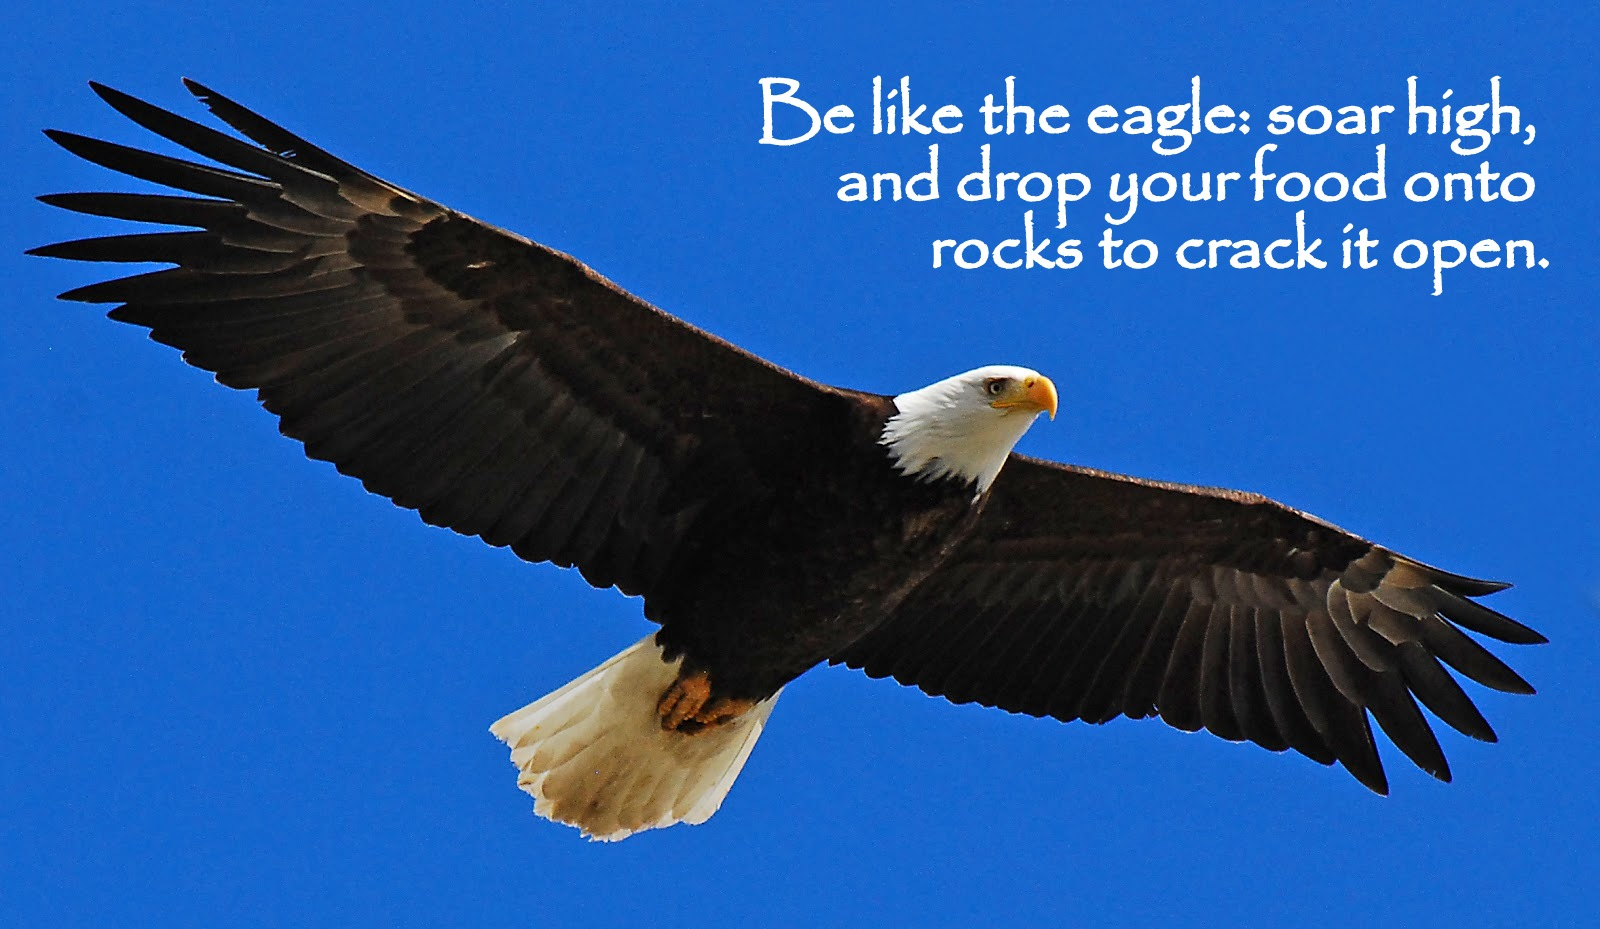 Eagle Sayings And Quotes Best Quotes And Sayings